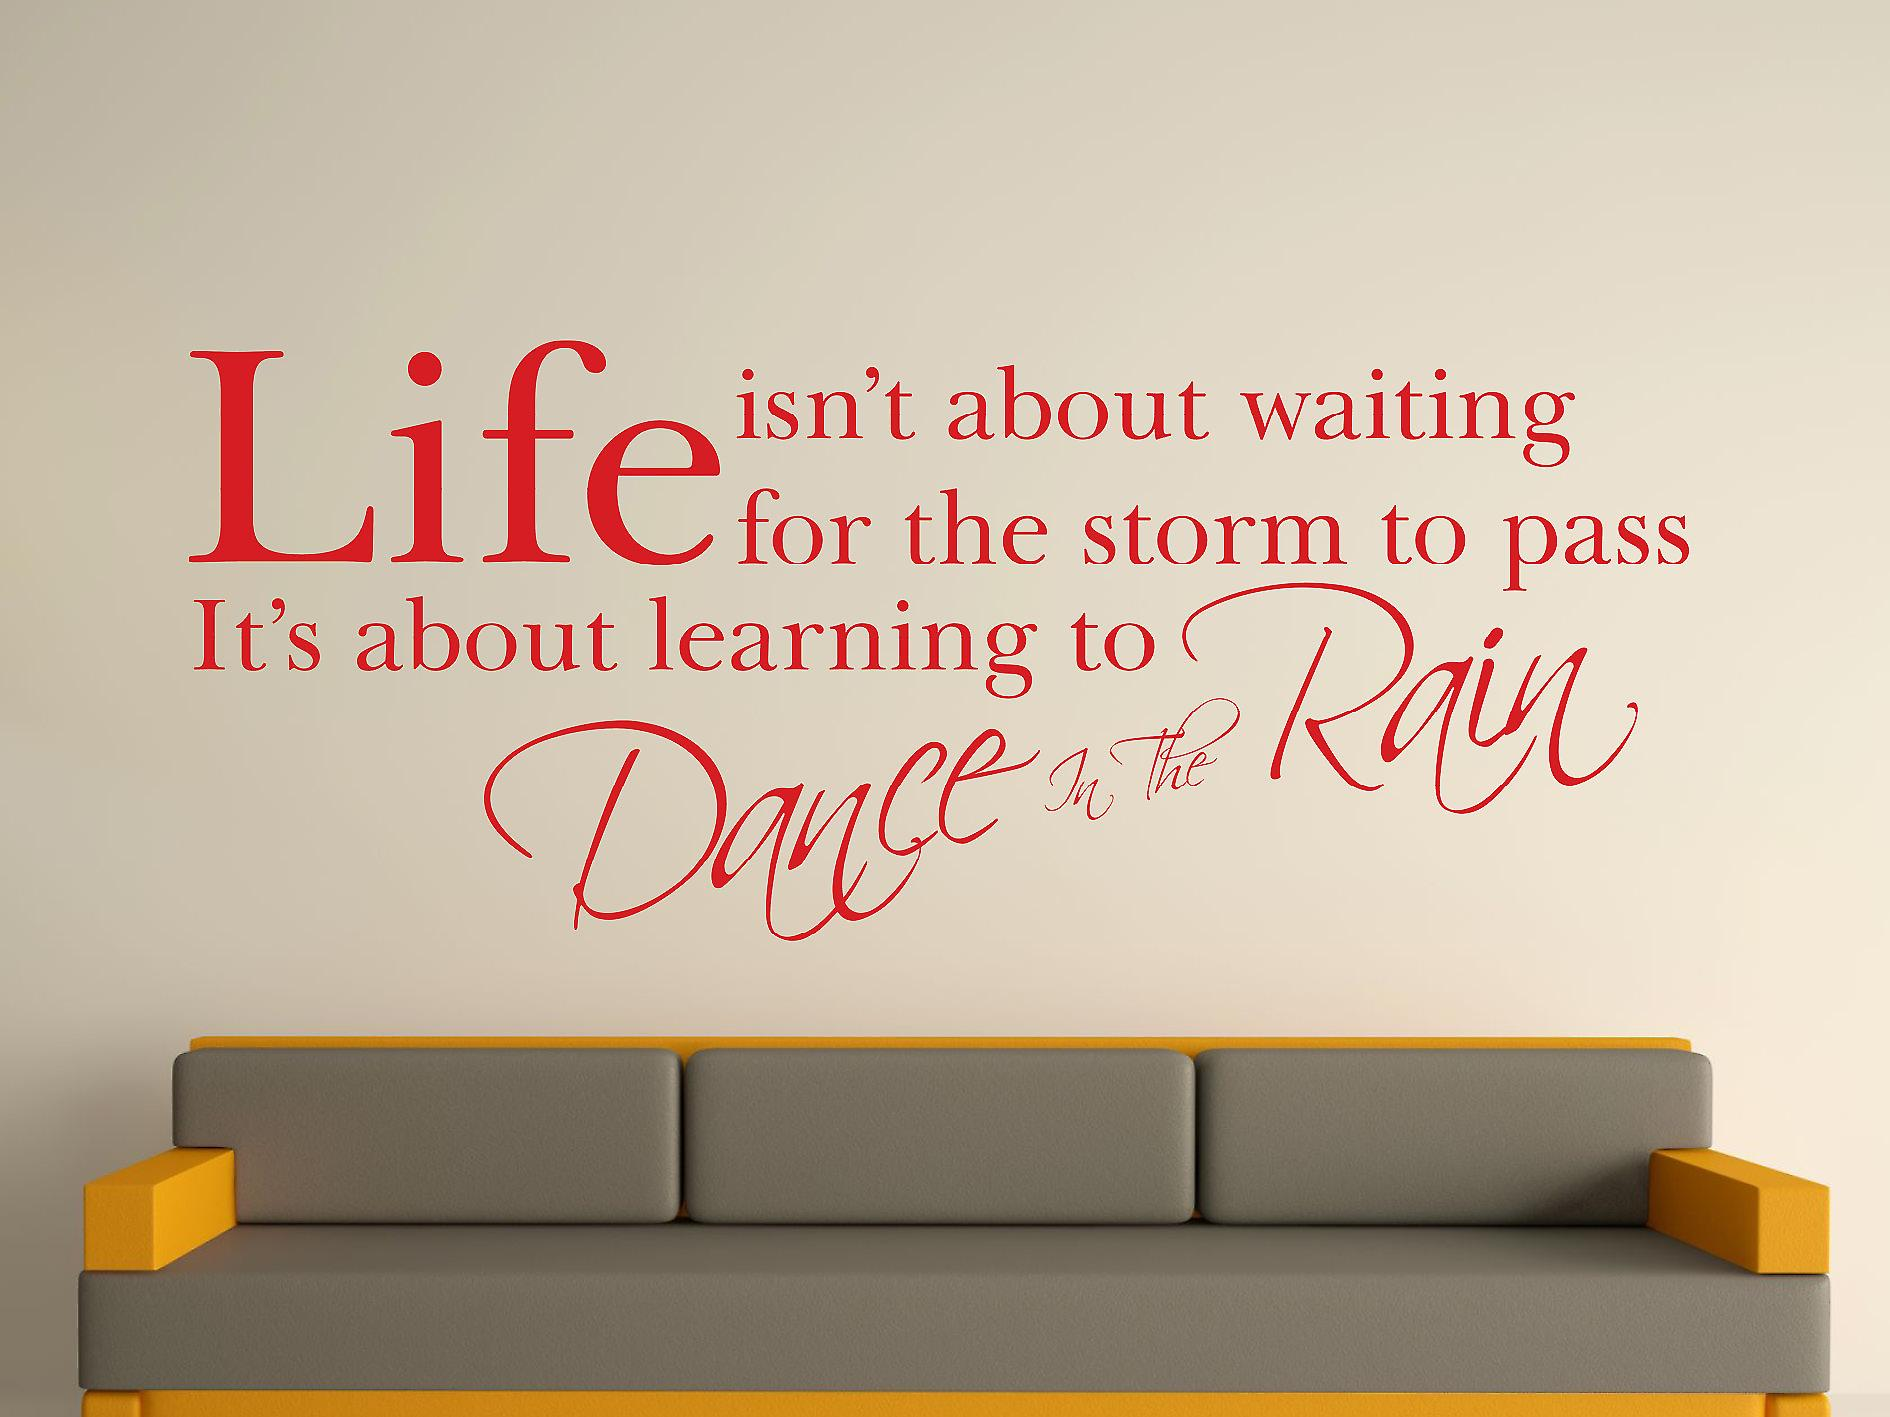 Dance In The Rain Wall Art Sticker - Cherry Red